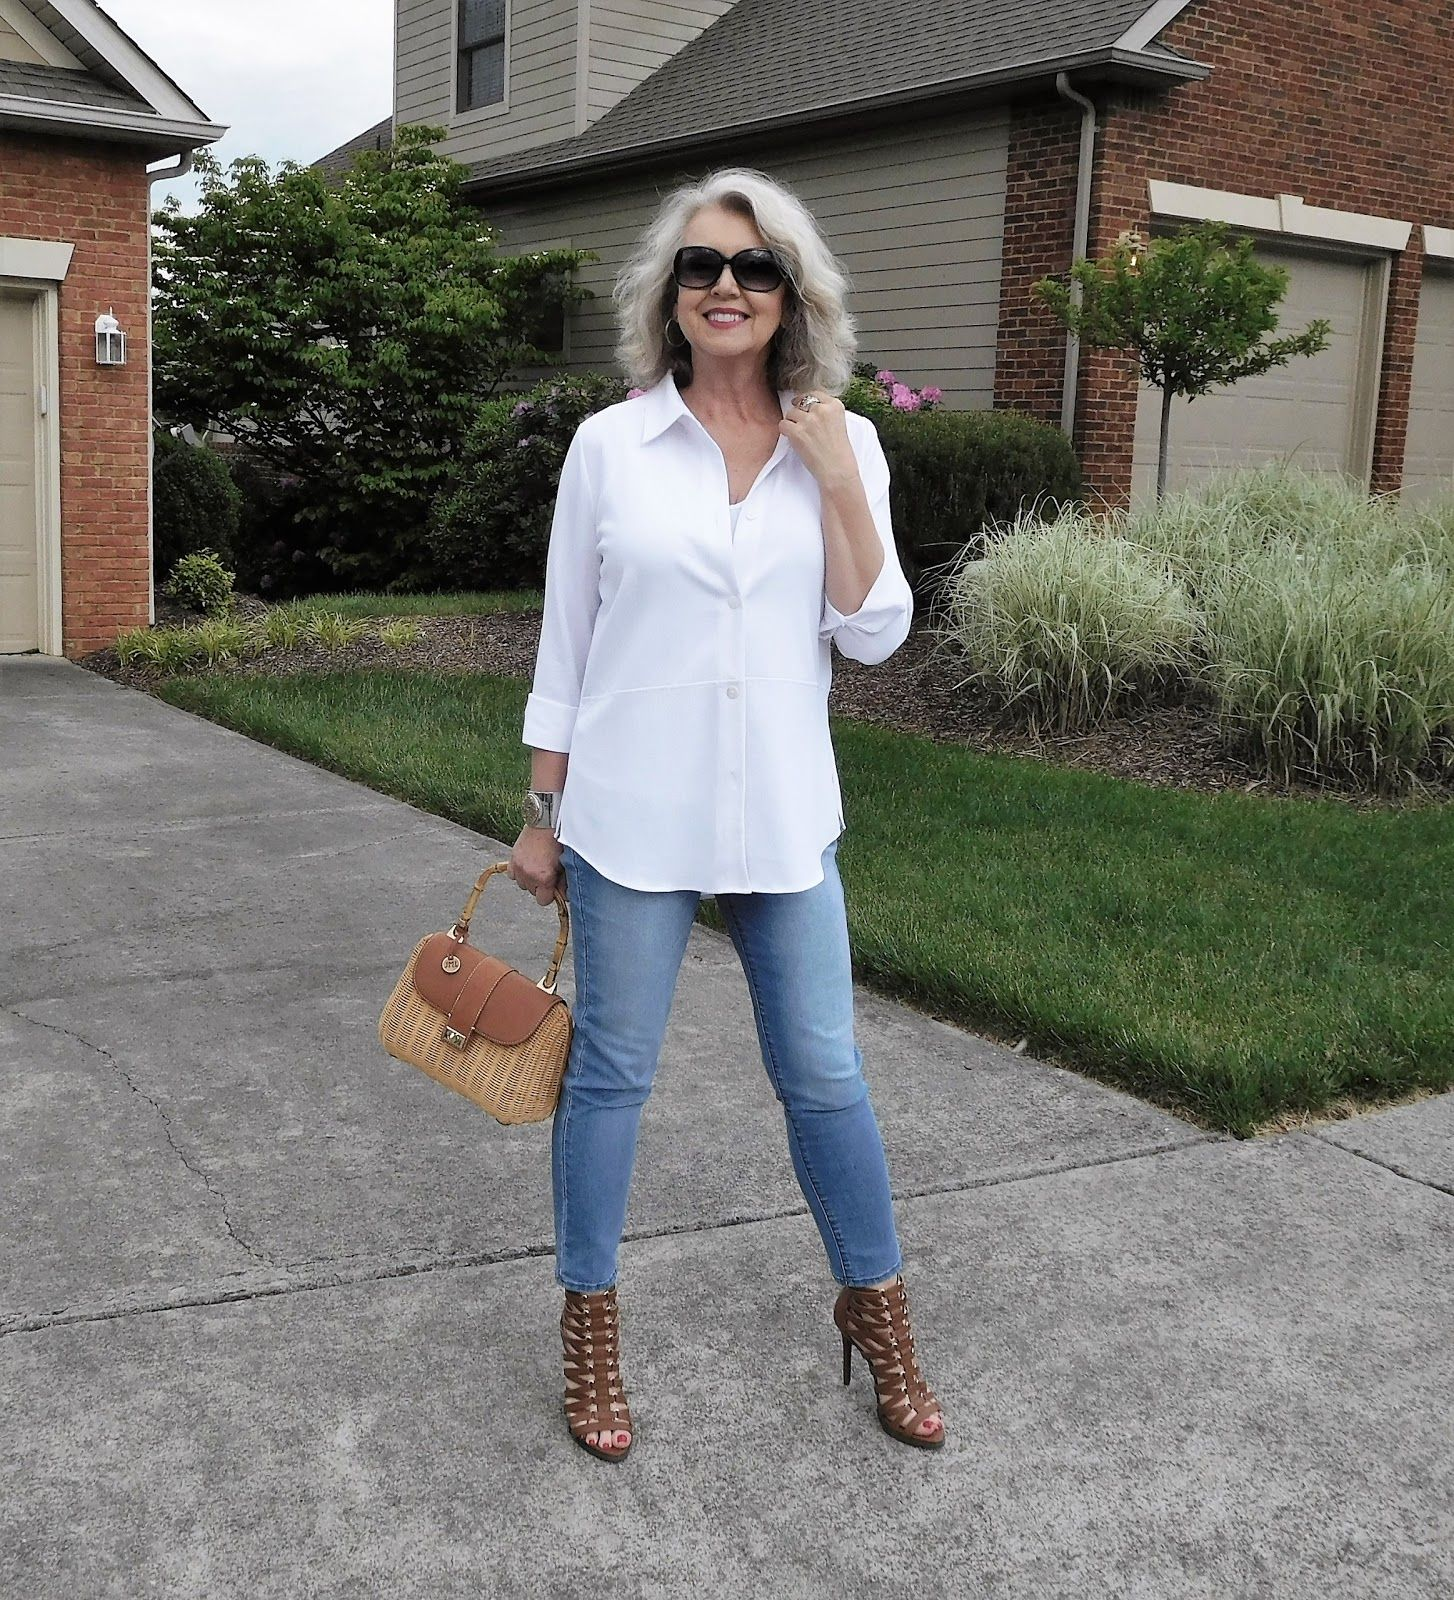 Pin by Therese Emmett on Fashion over 40 | Stylish outfits ...